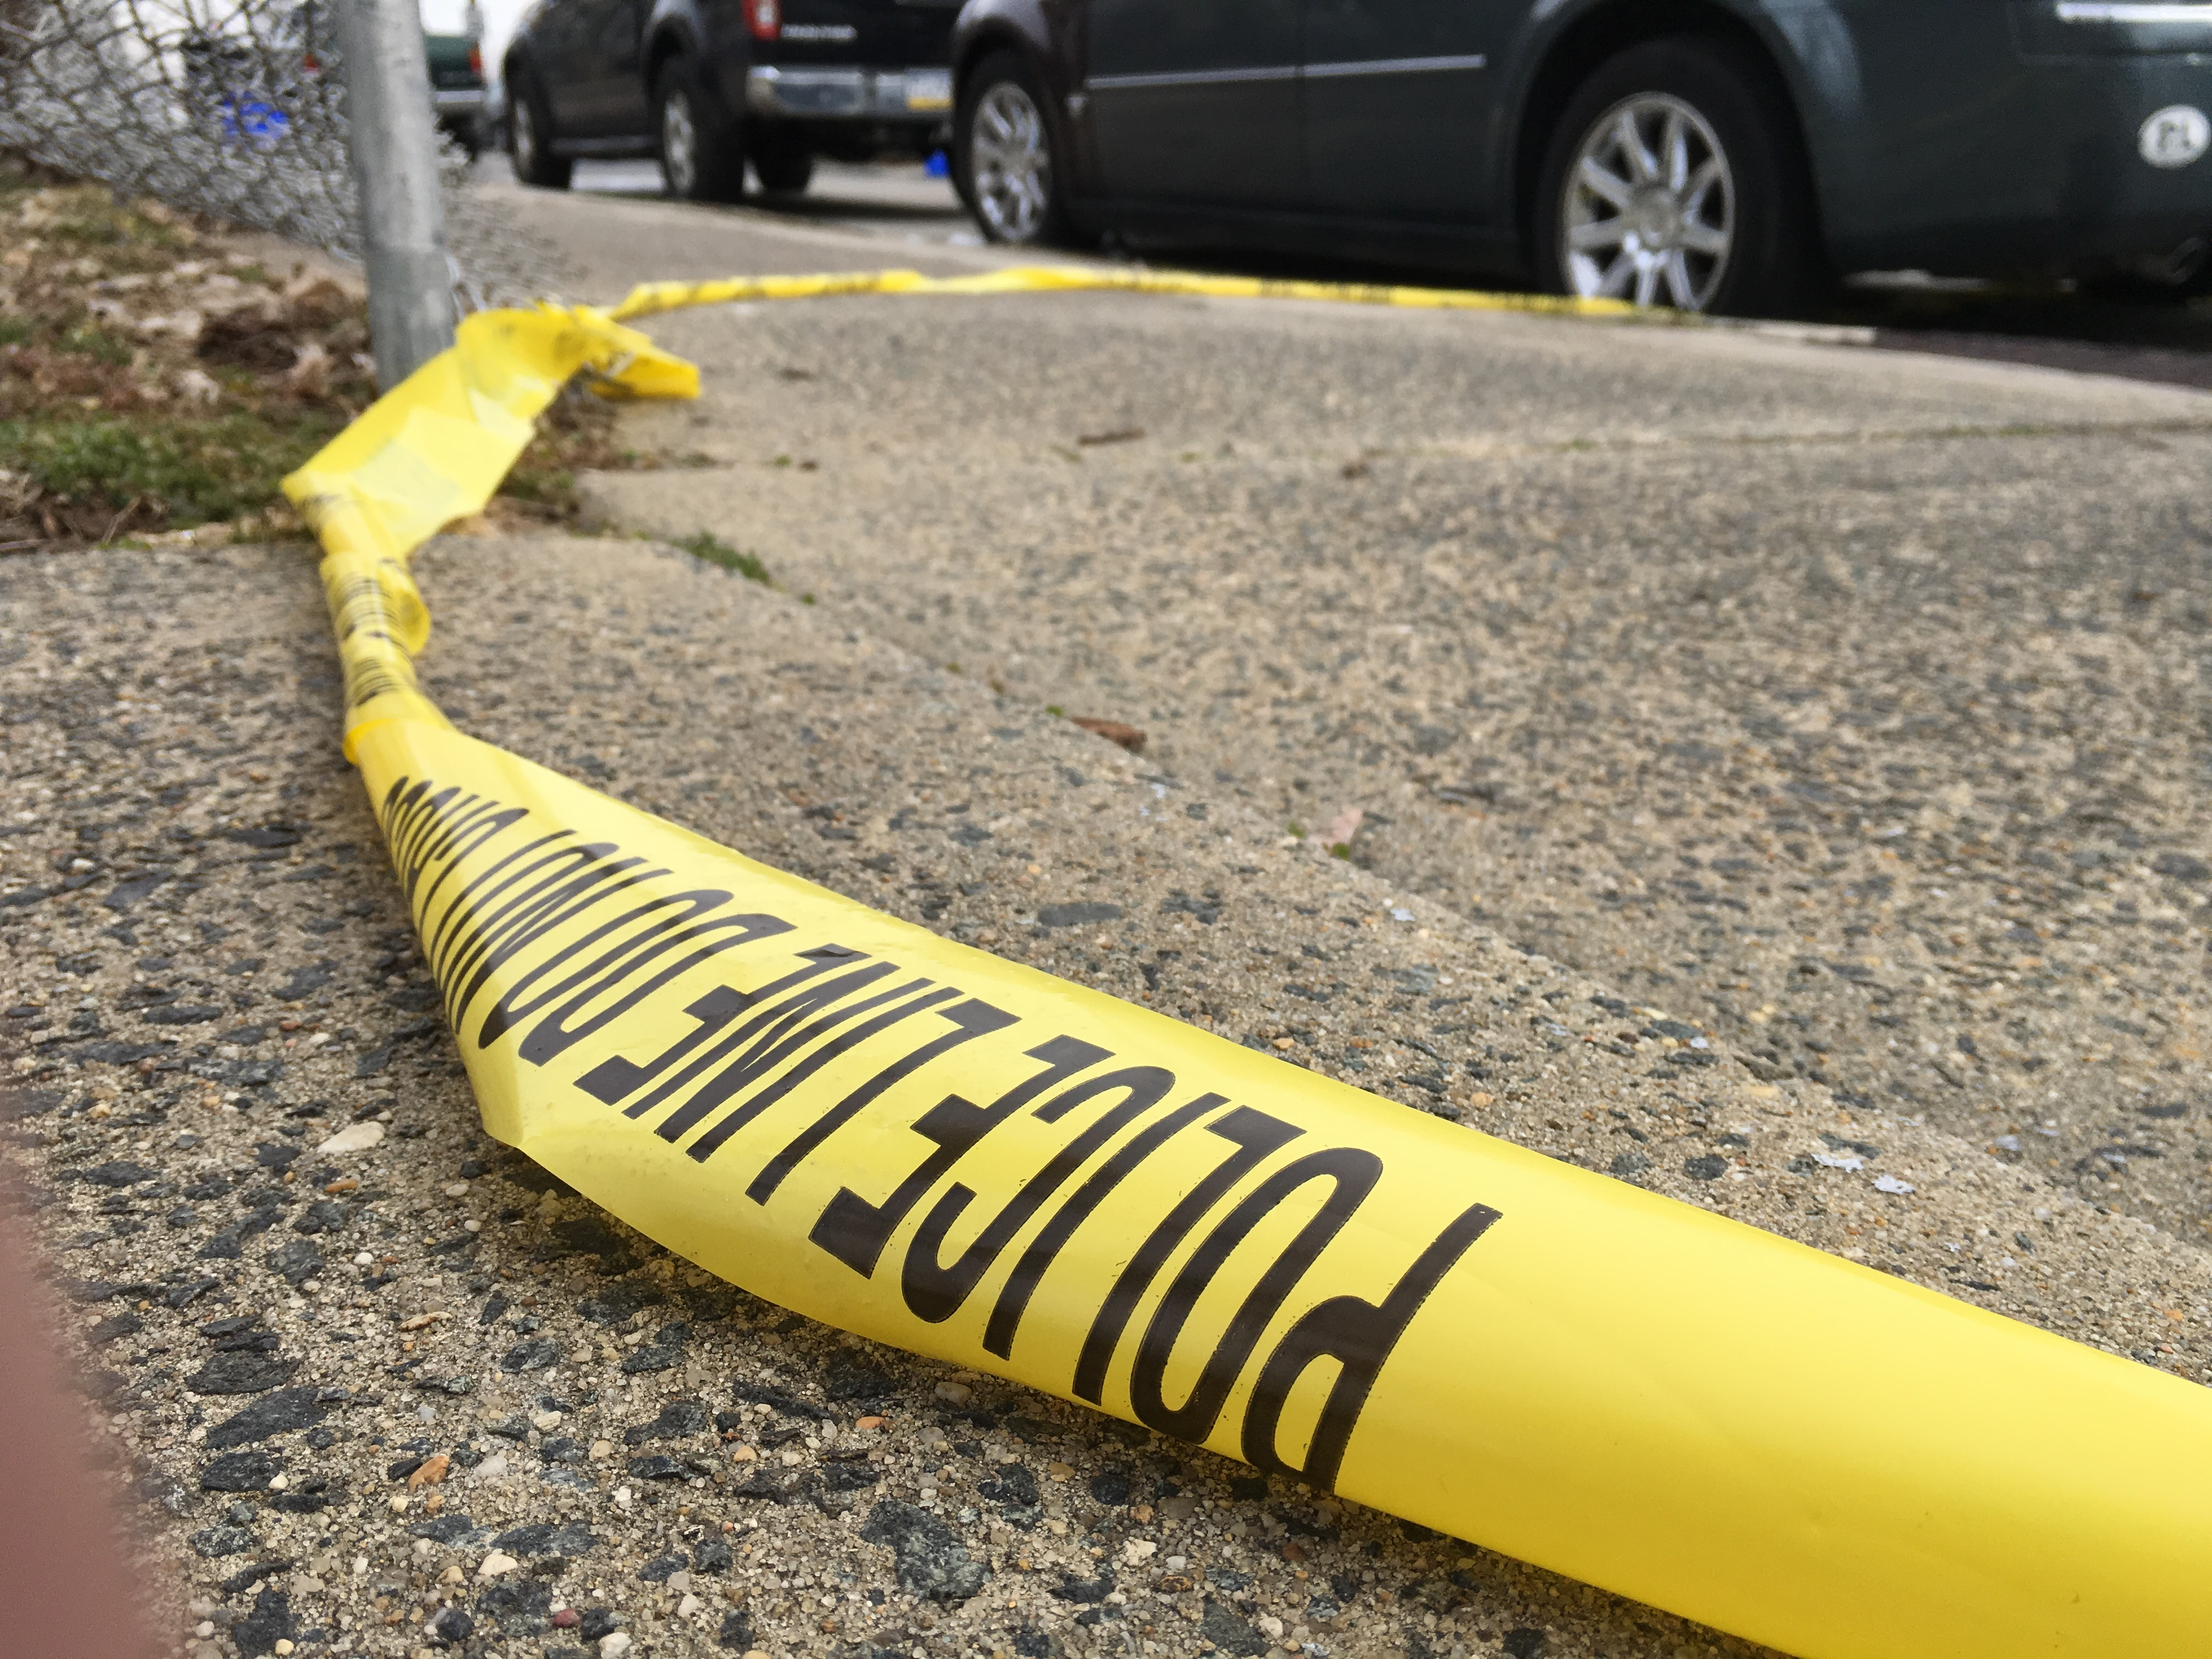 18-Year-Old Killed, 16-Year-Old Critically Injured After